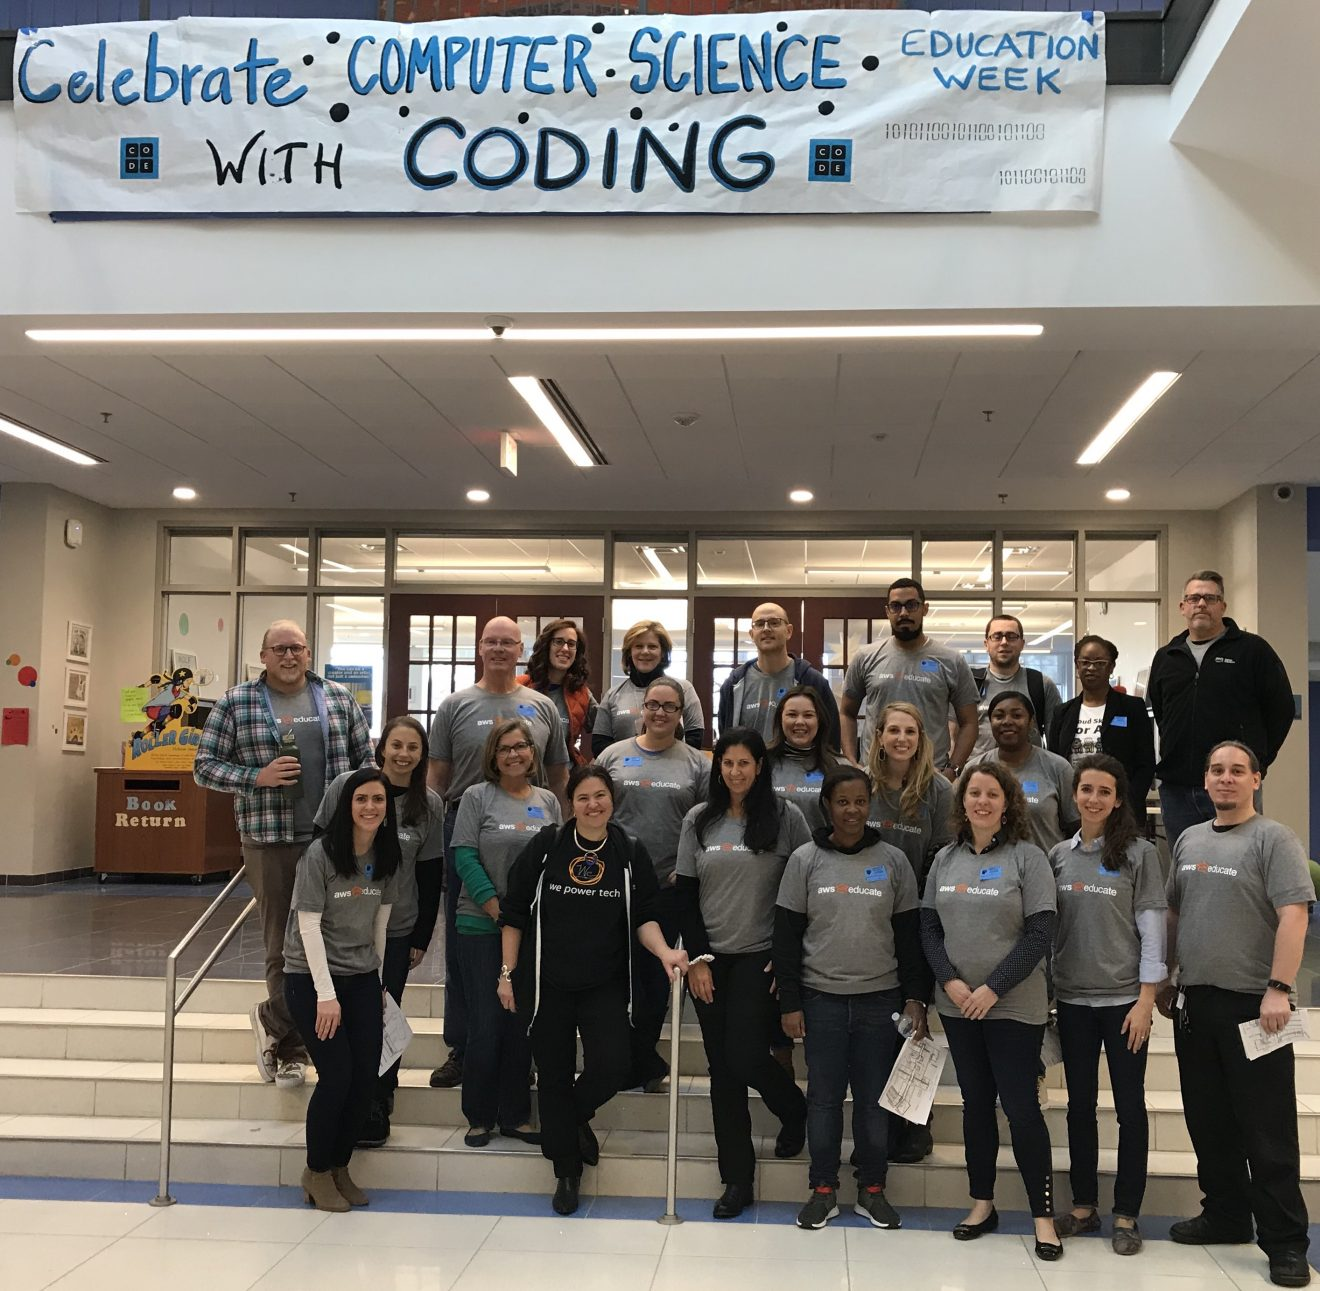 Thank you for Supporting Computer Science Education Week!